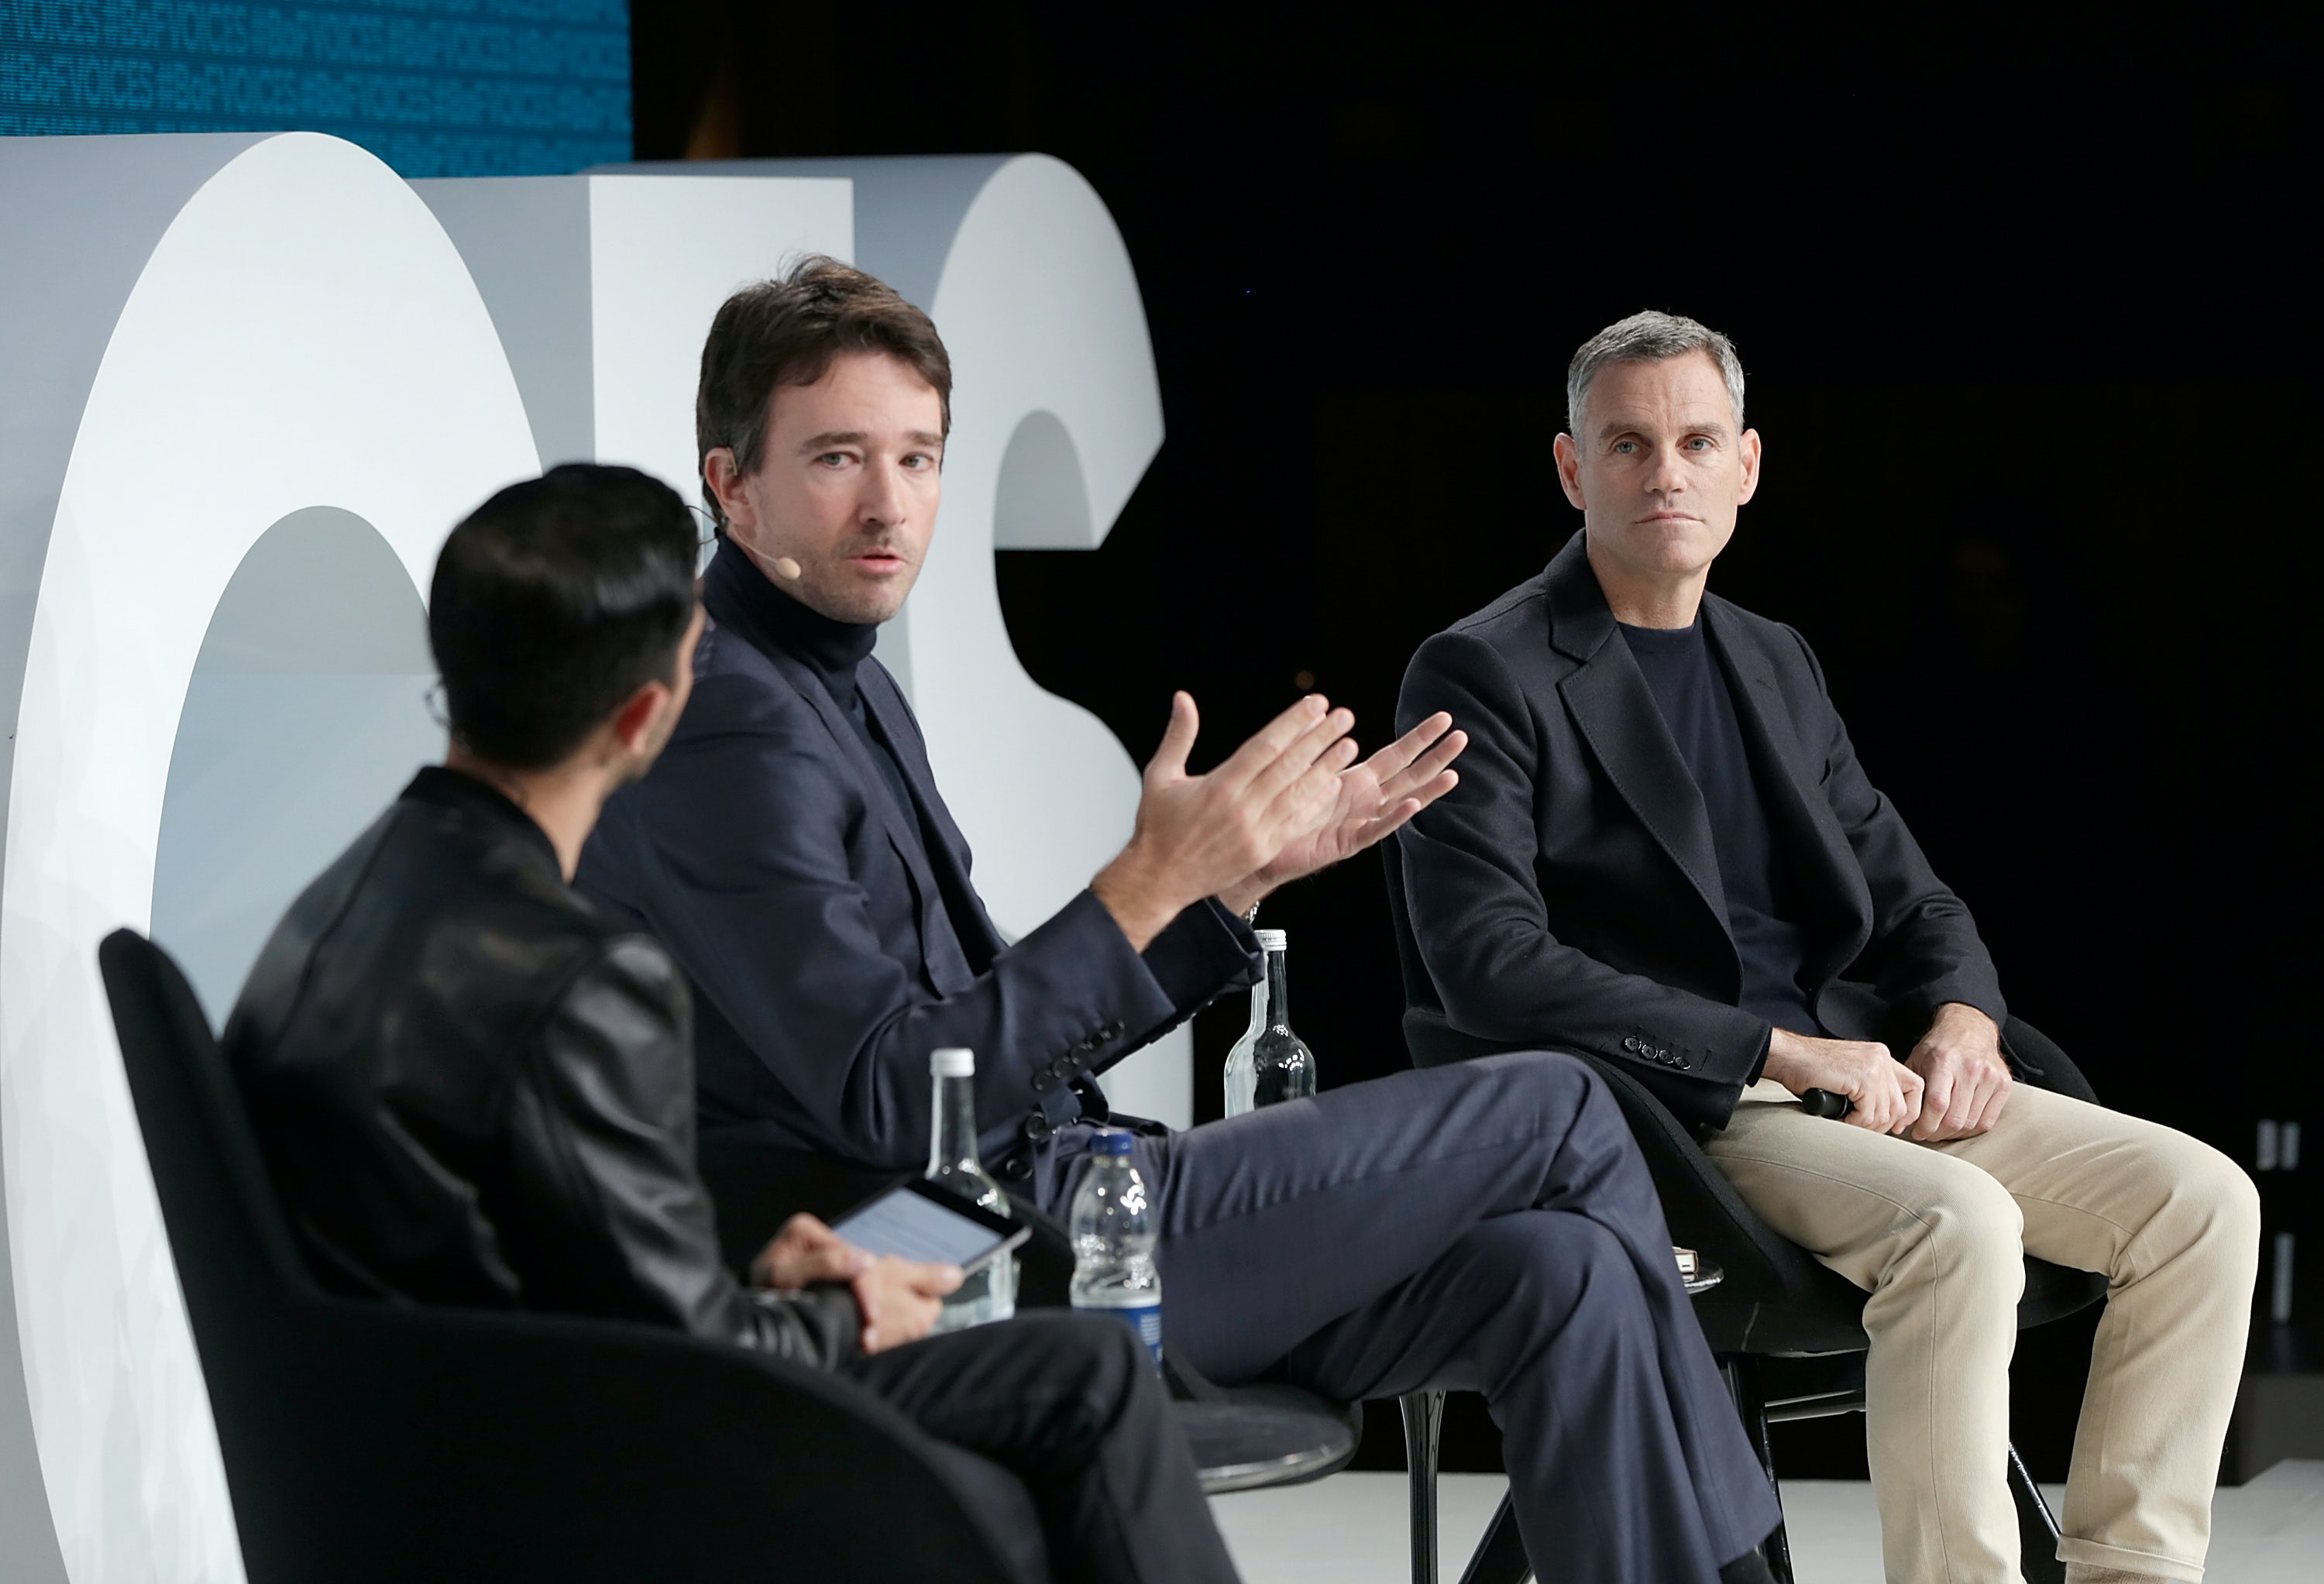 OXFORD, ENGLAND - DECEMBER 01:  (L-R) Imran Amed, Antoine Arnault and James Scully speak on stage during #BoFVOICES on December 1, 2017 in Oxford, England.  (Photo by John Phillips/Getty Images for The Business of Fashion )